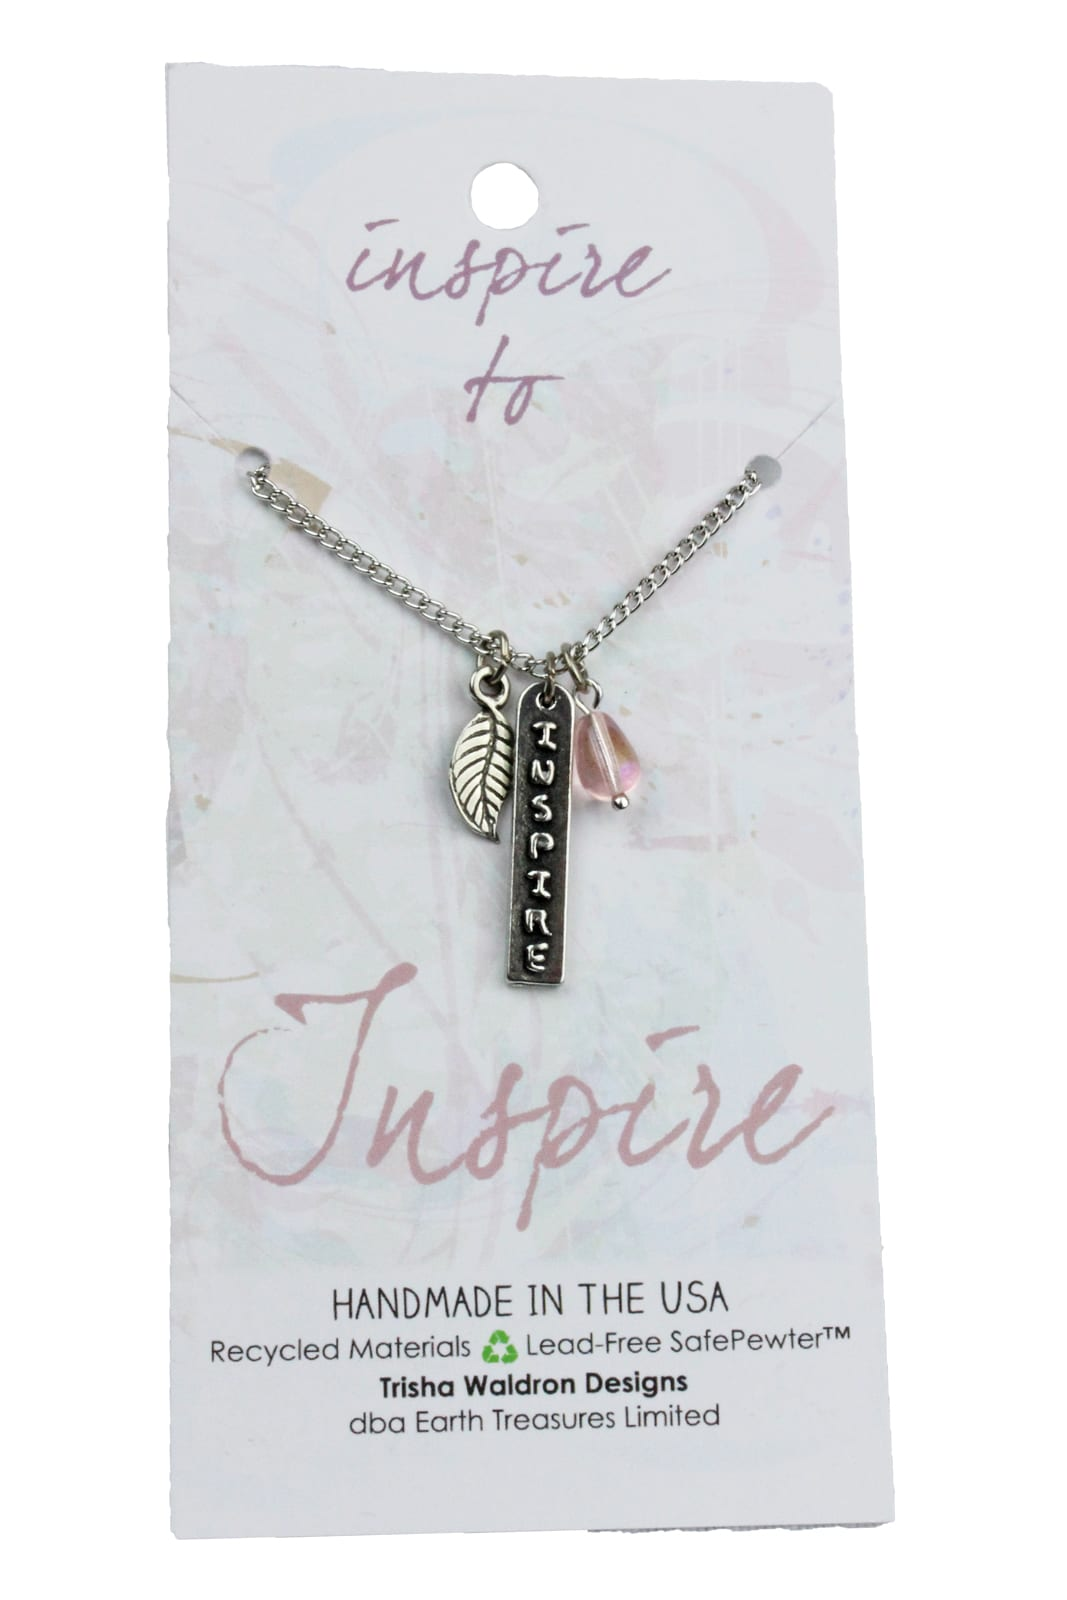 Inspire *Made in the USA* Story Cards